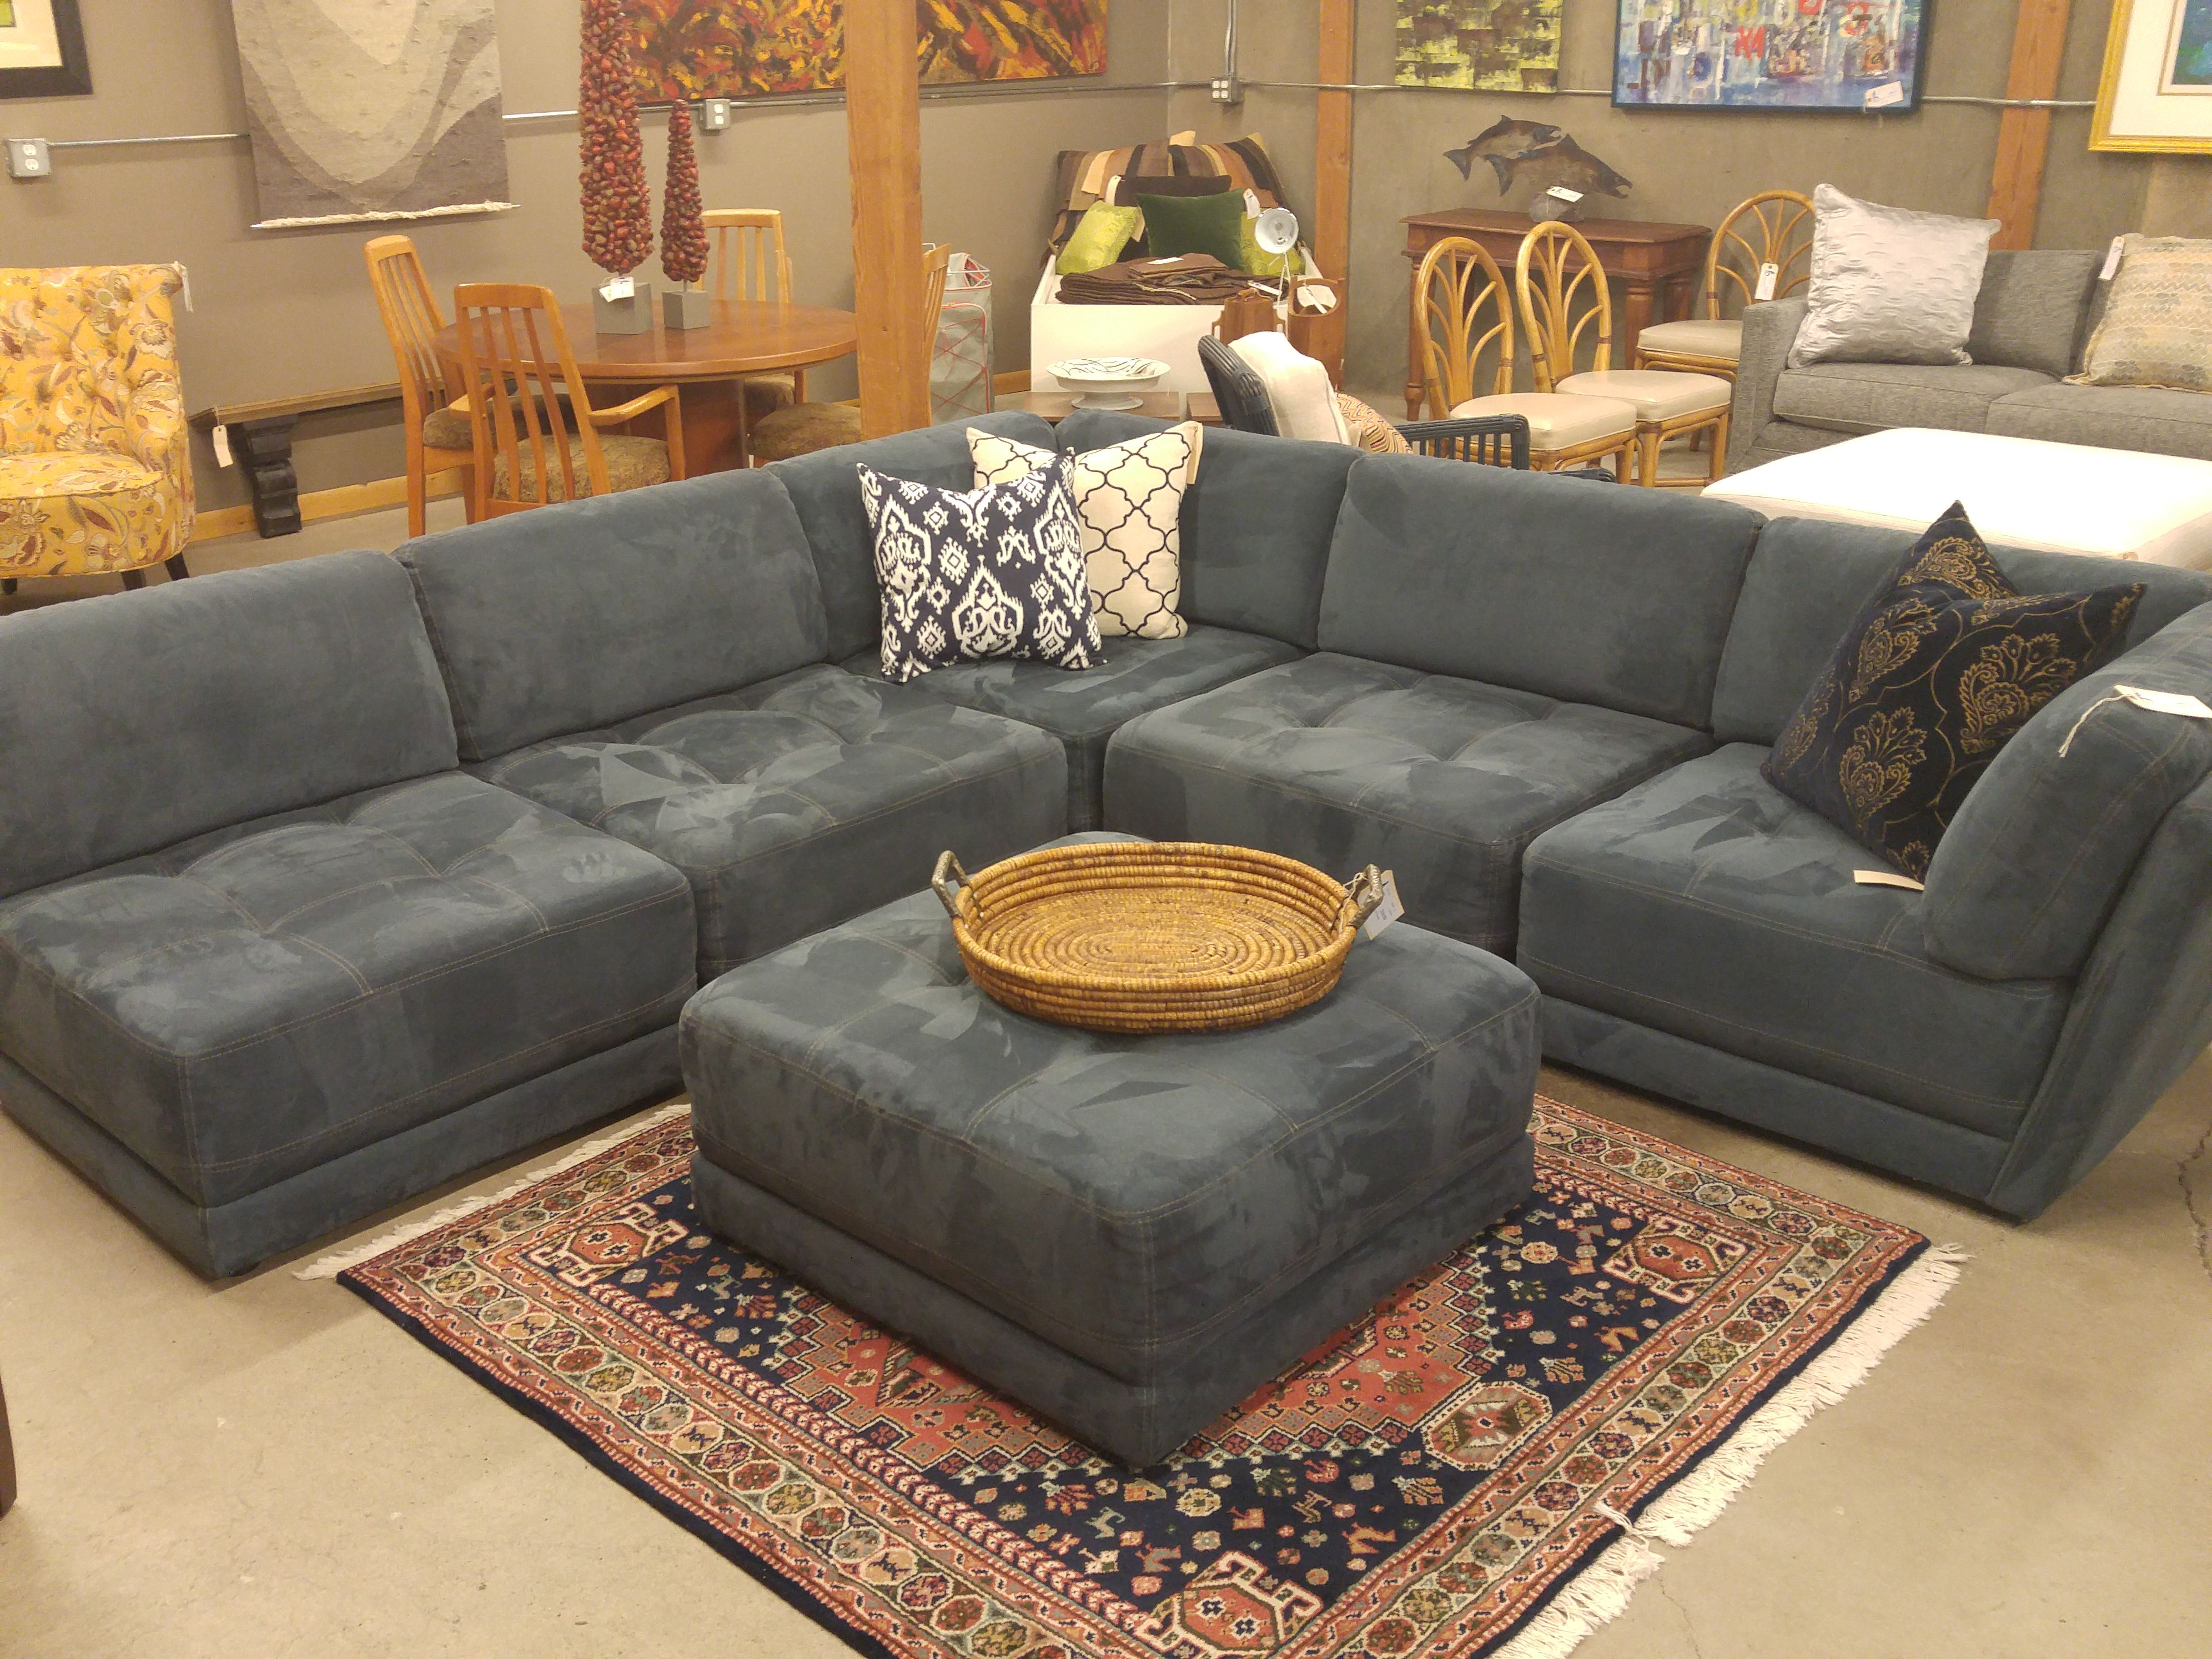 Inspirational Couches That Come Apart Luxury Couches That Come Apart 83 With Additional Sofa Table Tufted Sectional Sofa Sectional Sofa Brown Sectional Sofa